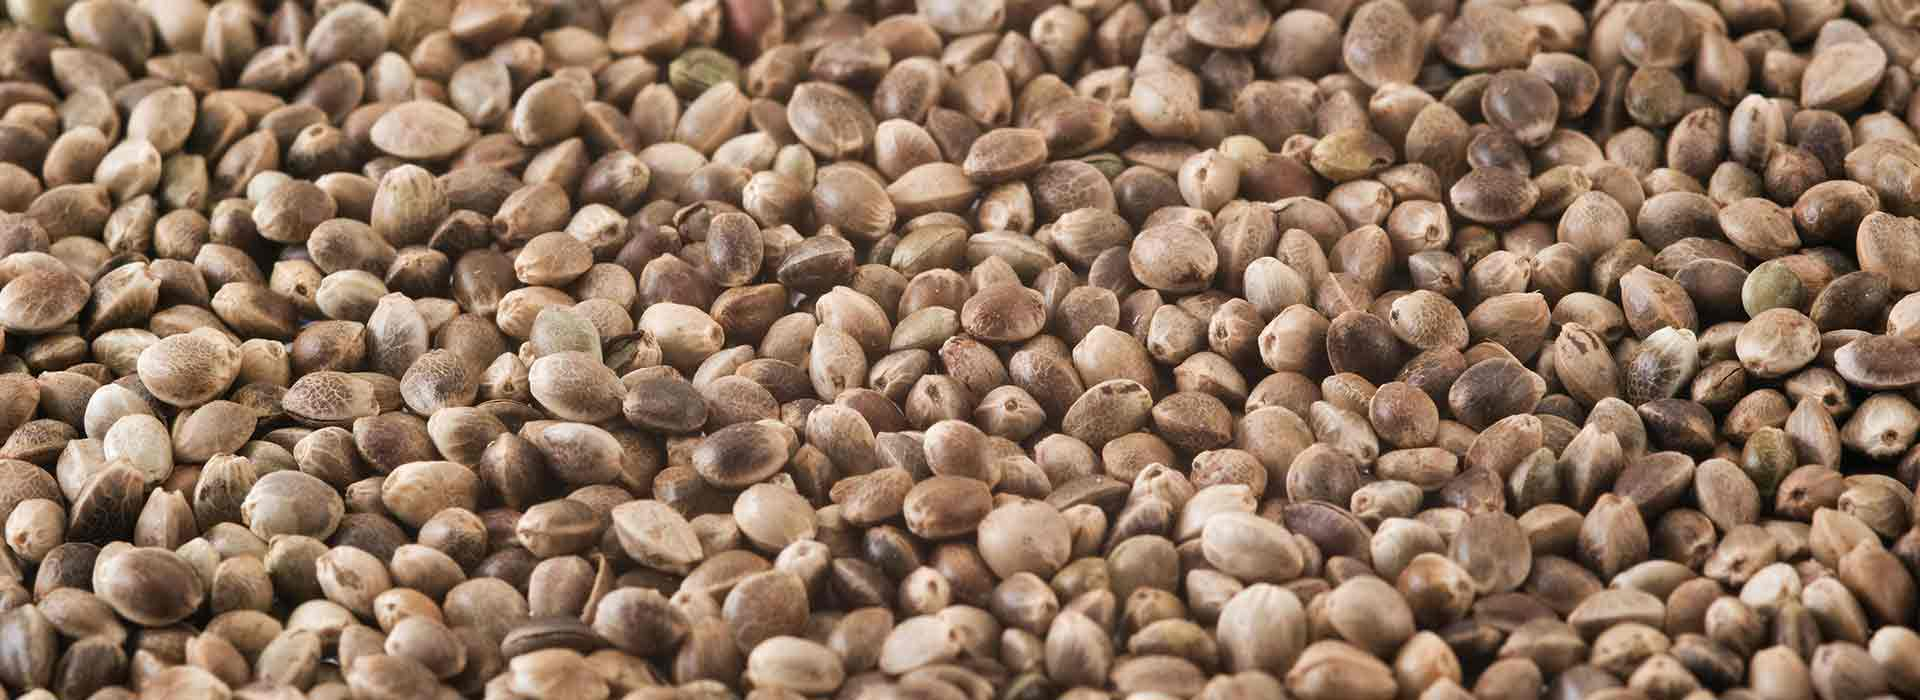 bigstock-Hemp-Seeds-2848439.jpg